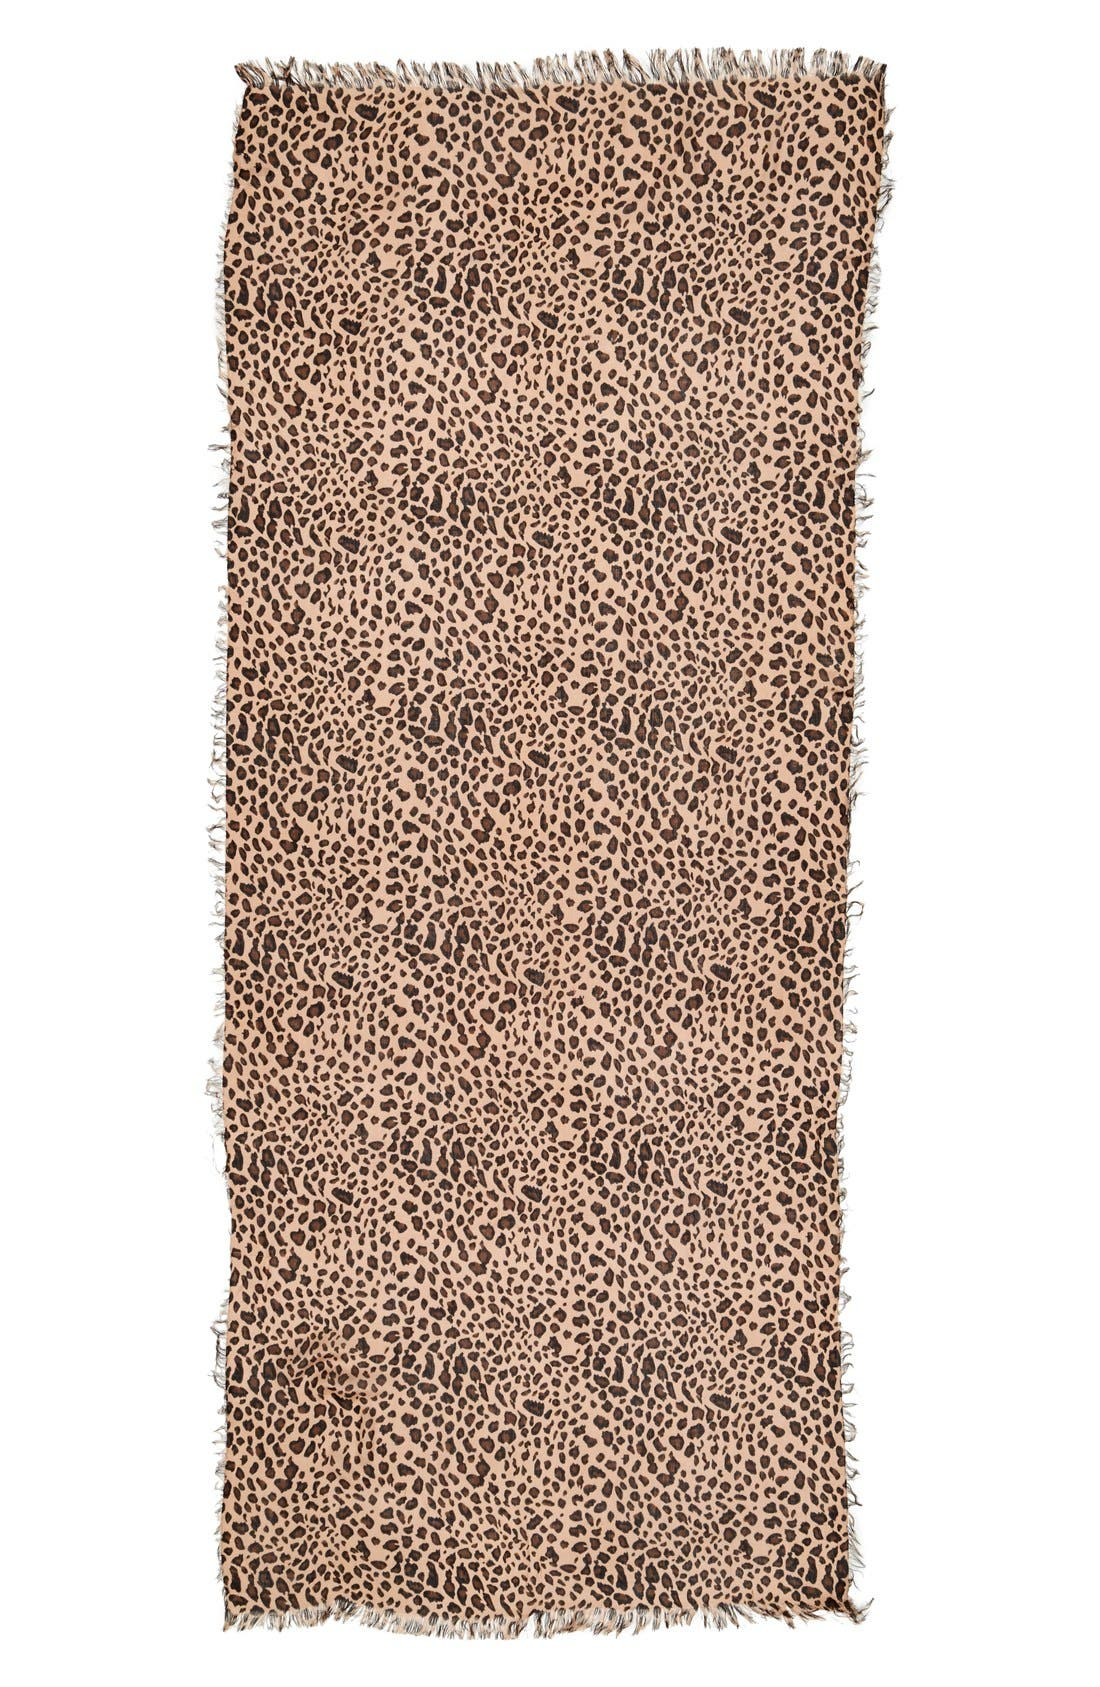 Leopard Print Scarf,                             Alternate thumbnail 2, color,                             BROWN